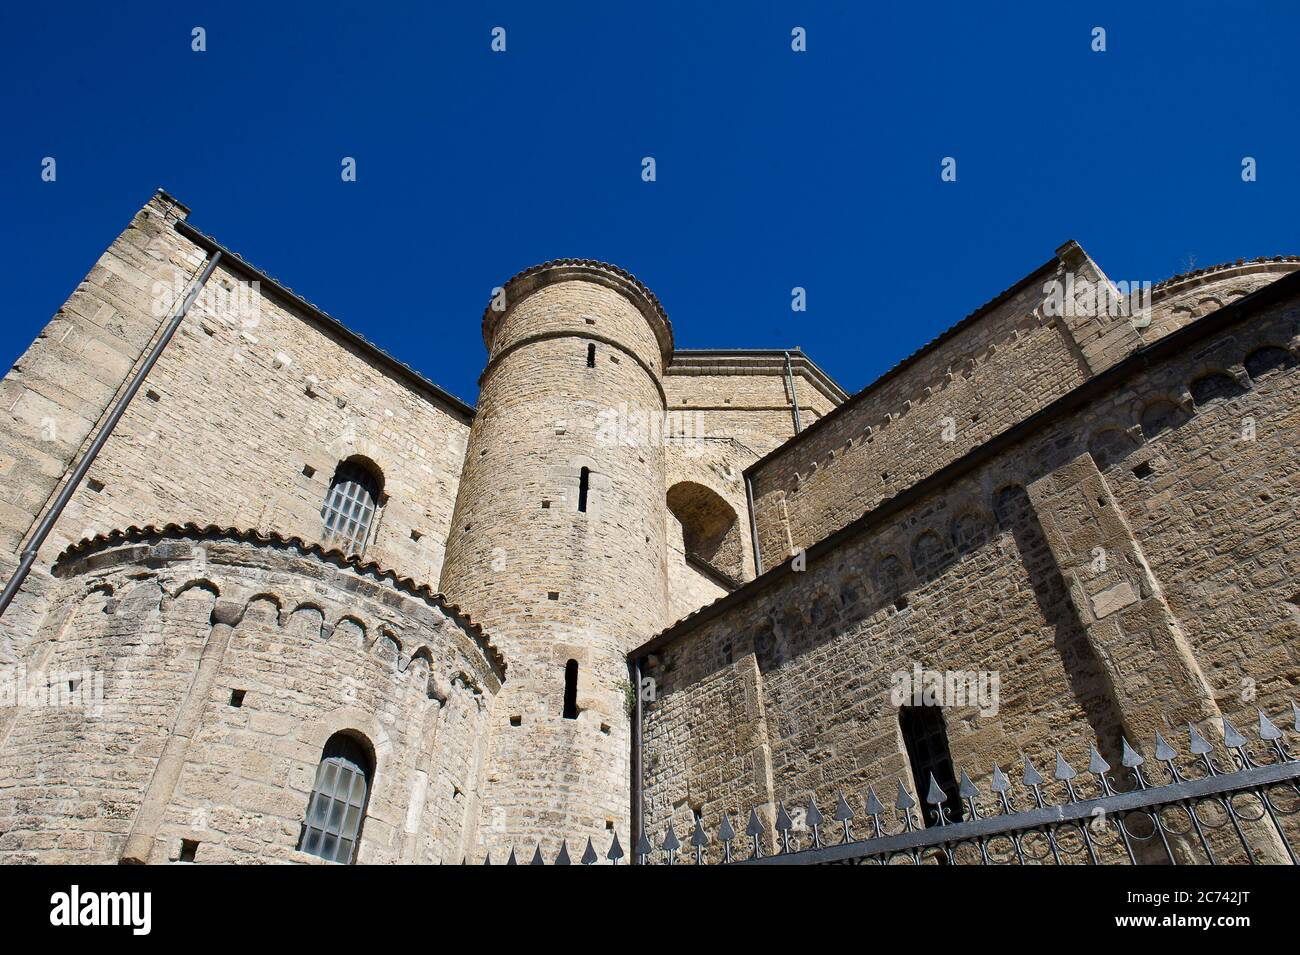 Italy, Basilicata, Acerenza, the Cathedral of Acerenza, dedicated to Santa Maria Assunta and San Canio Bishop in the Romanesque-Gothic style of the 13th chentury ad. Stock Photo